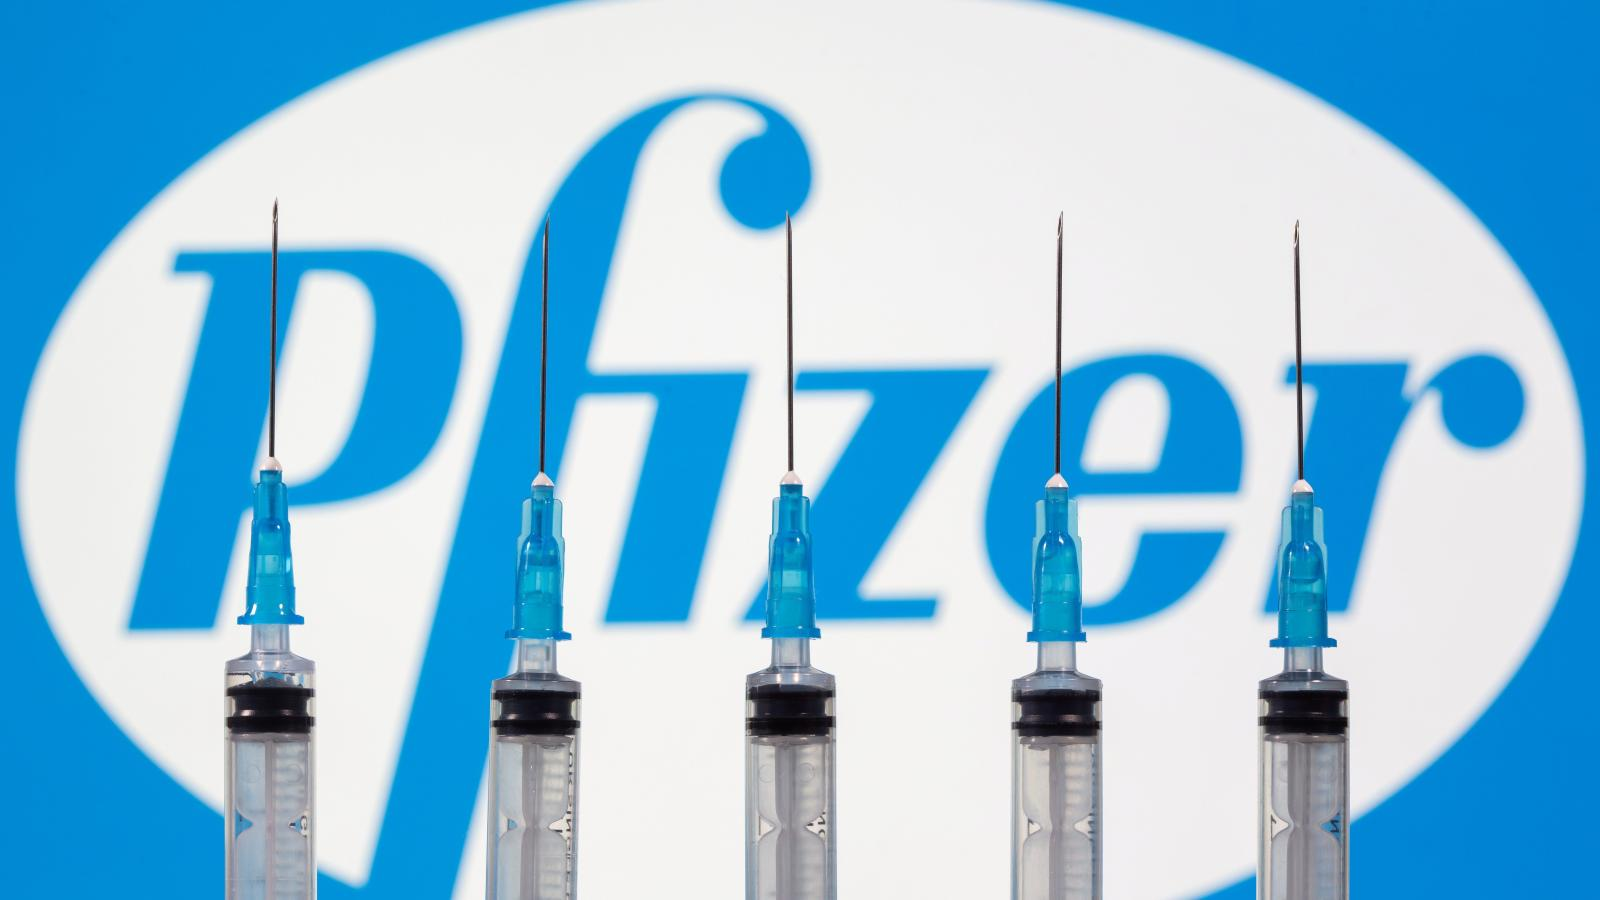 Pfizer Preparing to Seek Approval for Its Covid Vaccine in 5-11 Year-Olds